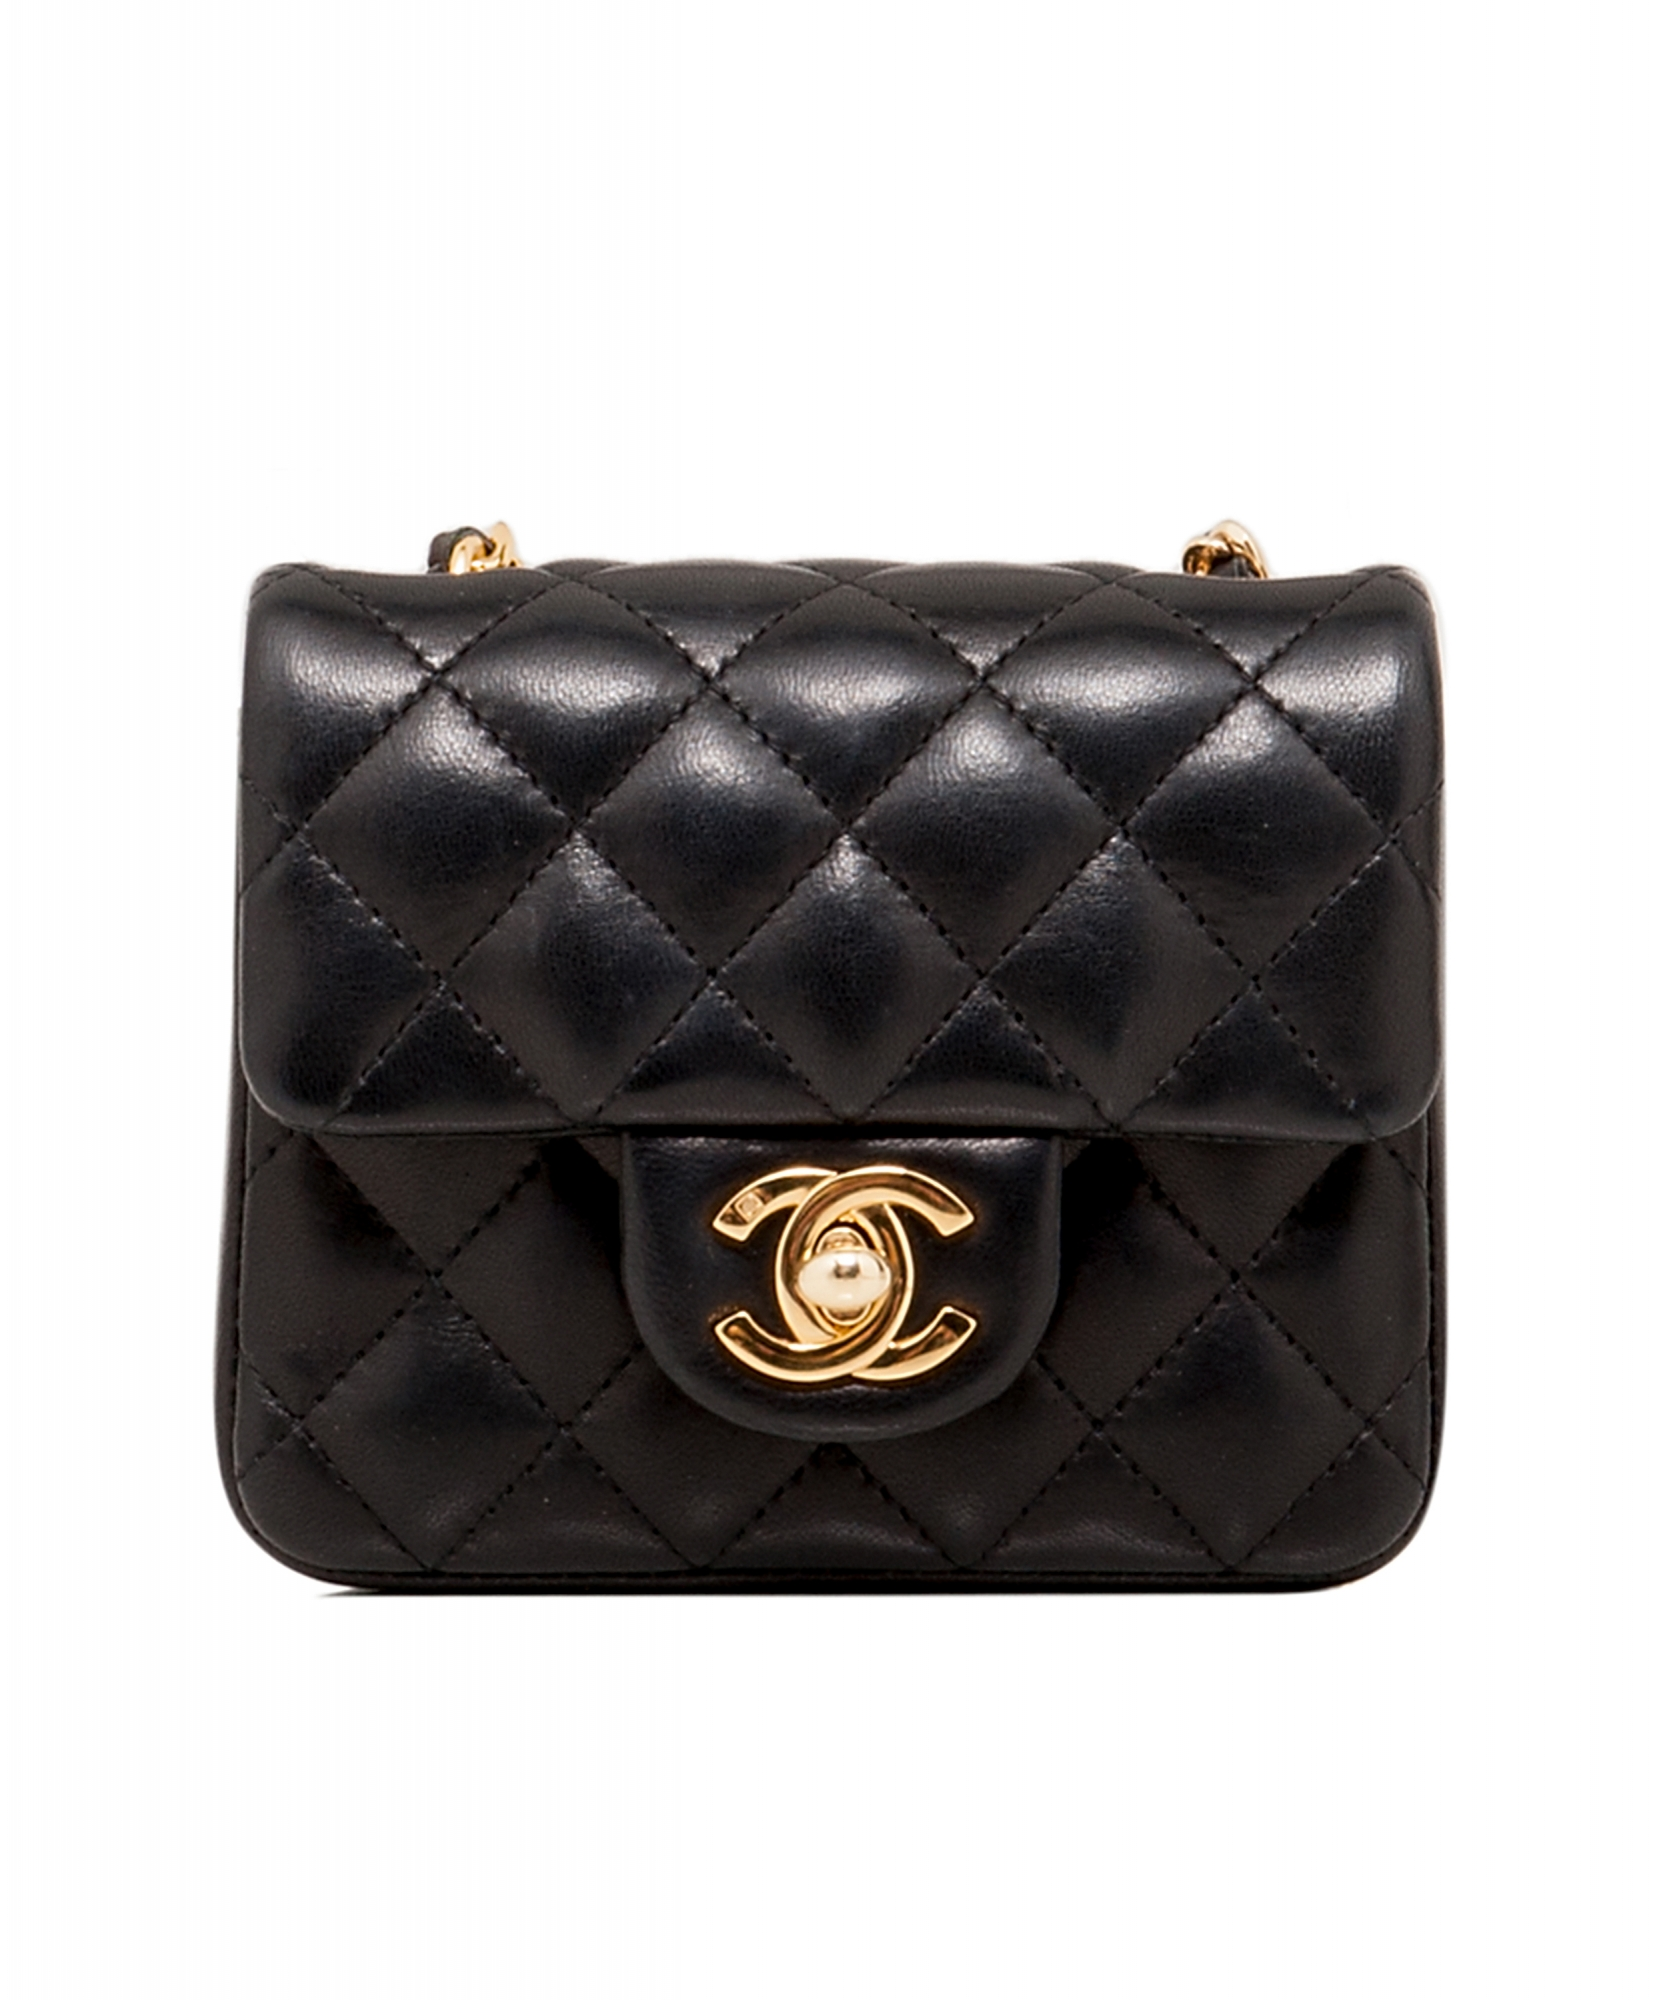 6c113e8f3586 Chanel Black Micro Mini Classic Cross Body Bag | La Doyenne